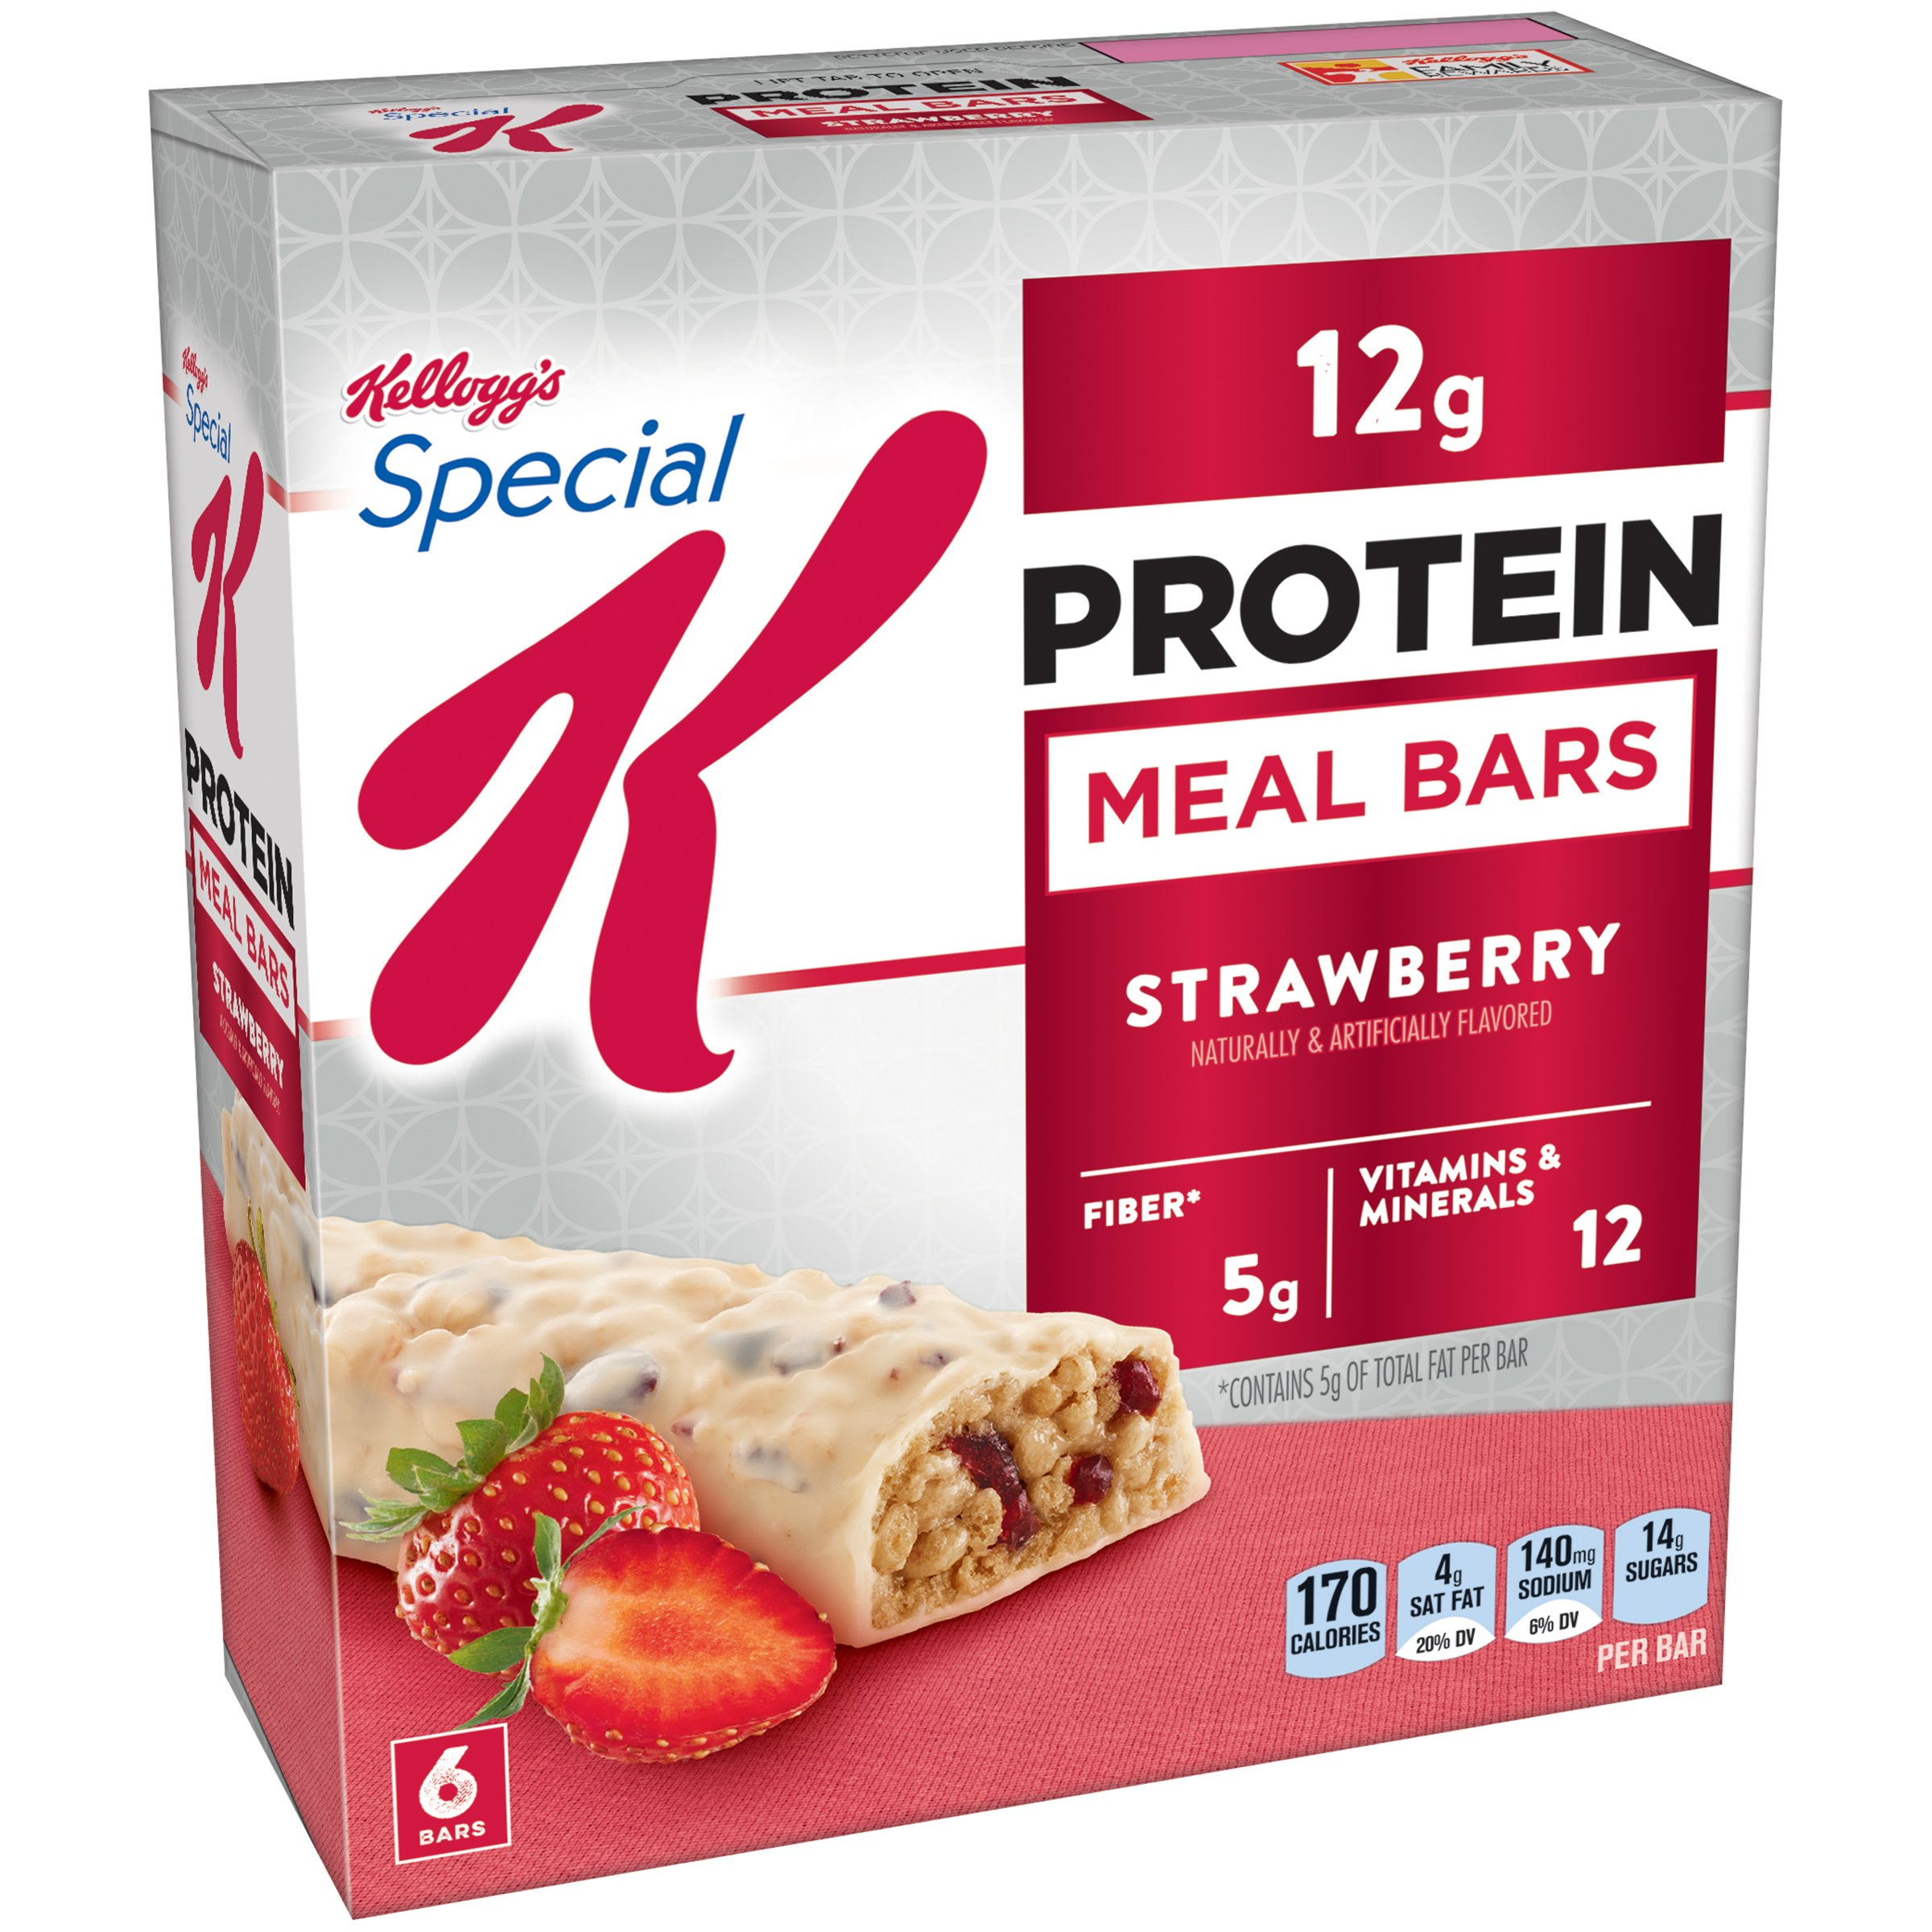 Don't have time for a sit-down meal? Reach for a Special K® Strawberry Protein Meal Bar. With protein and fiber, these bars are made with crispy, crunchy rice and pieces of strawberry-flavored fruit dipped in creamy goodness. Pretty sweet, right? Also available for purchase in single-serve packages.